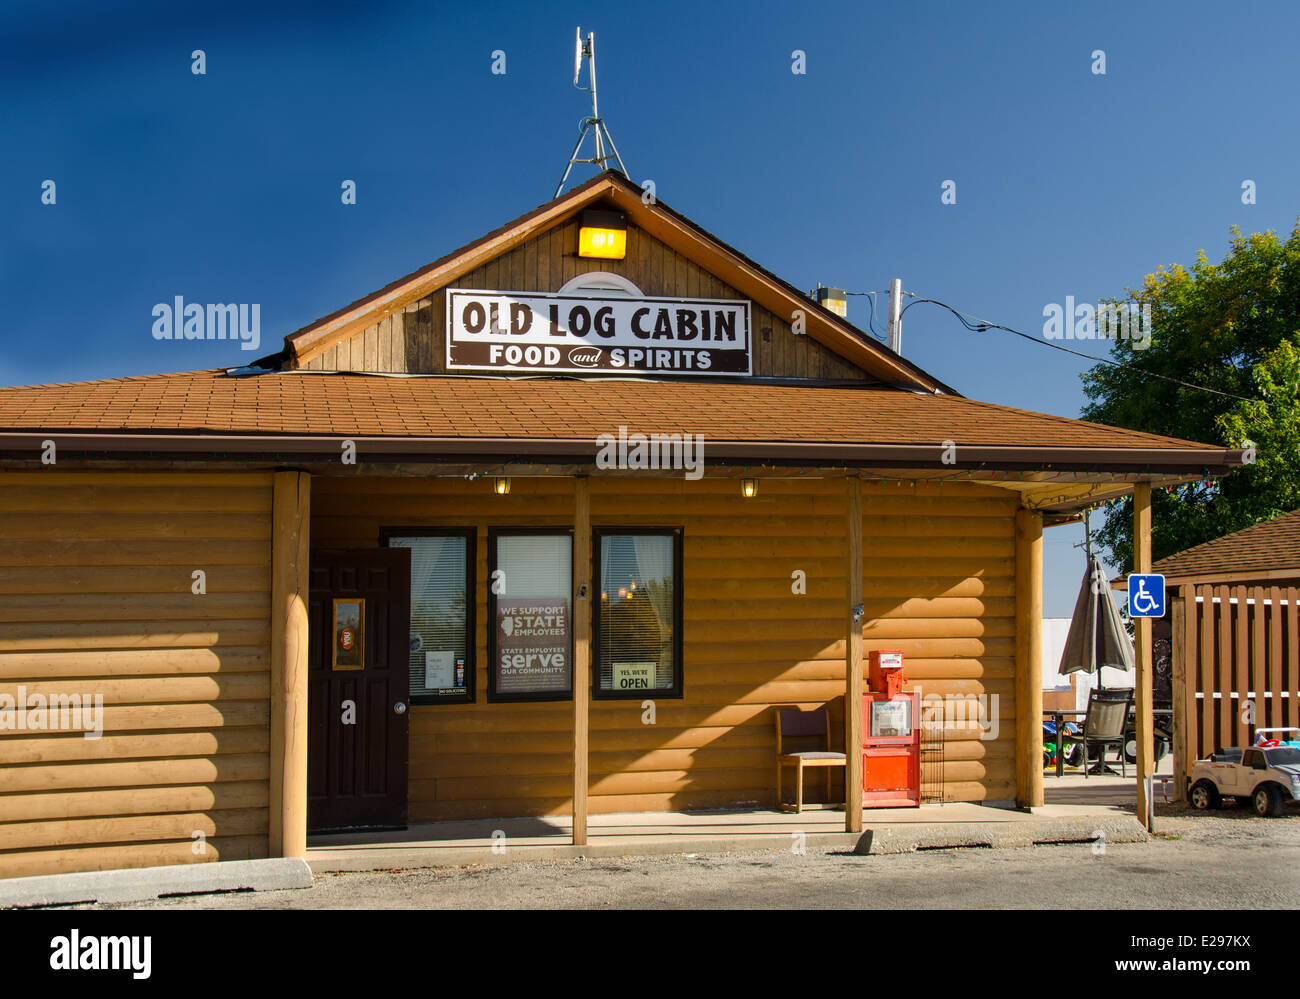 Old Log Cabin is a landmark restaurant along Route 66 in Pontiac, Illinois. - Stock Image